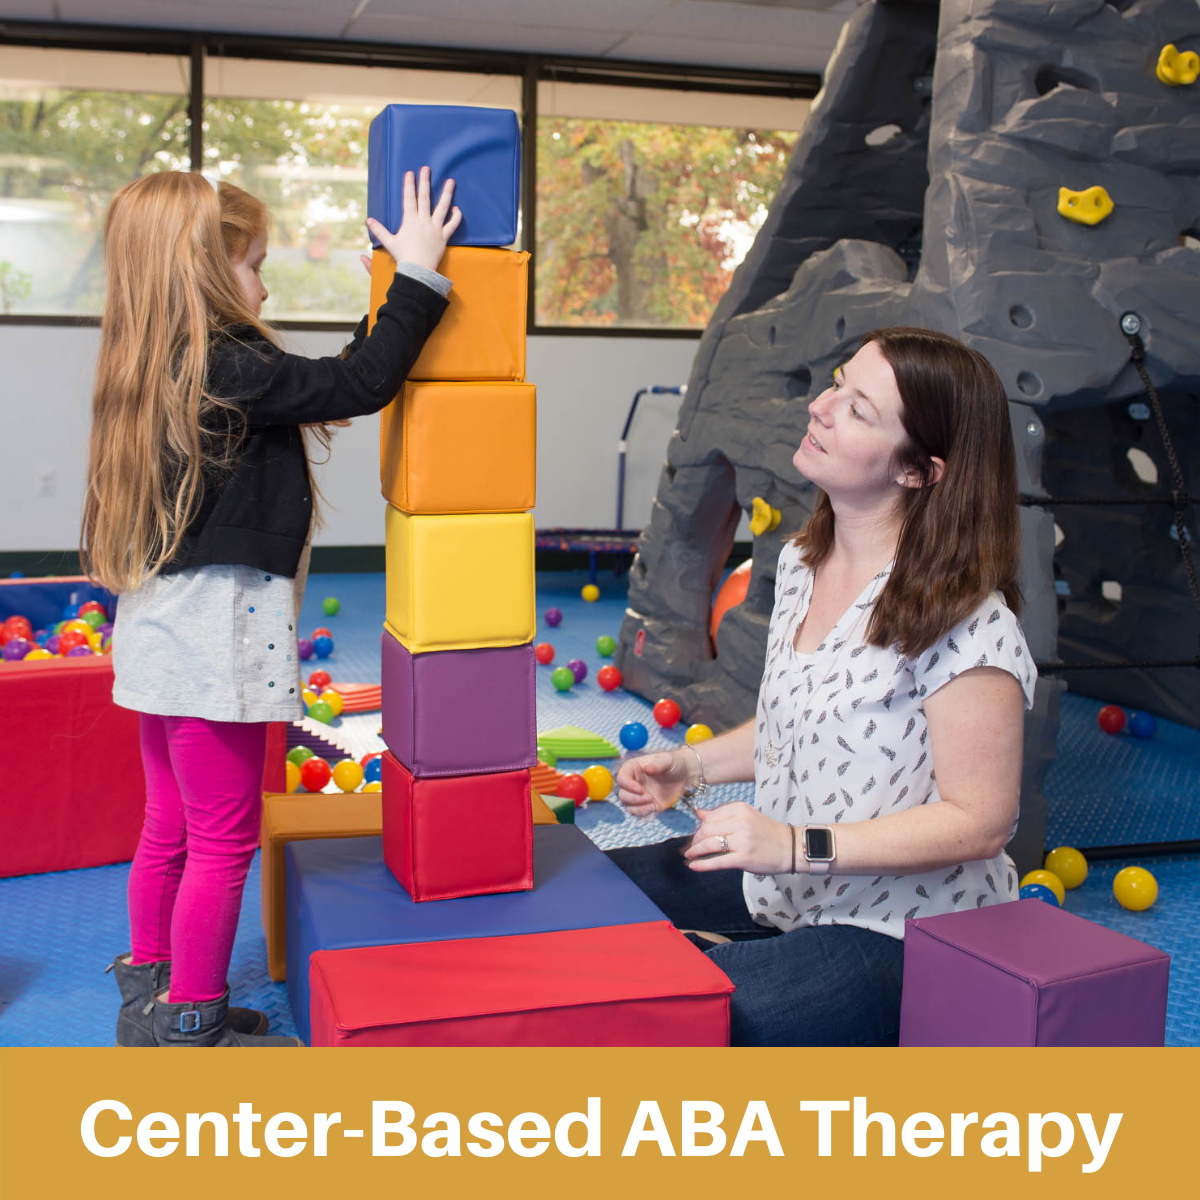 Center-Based ABA Therapy